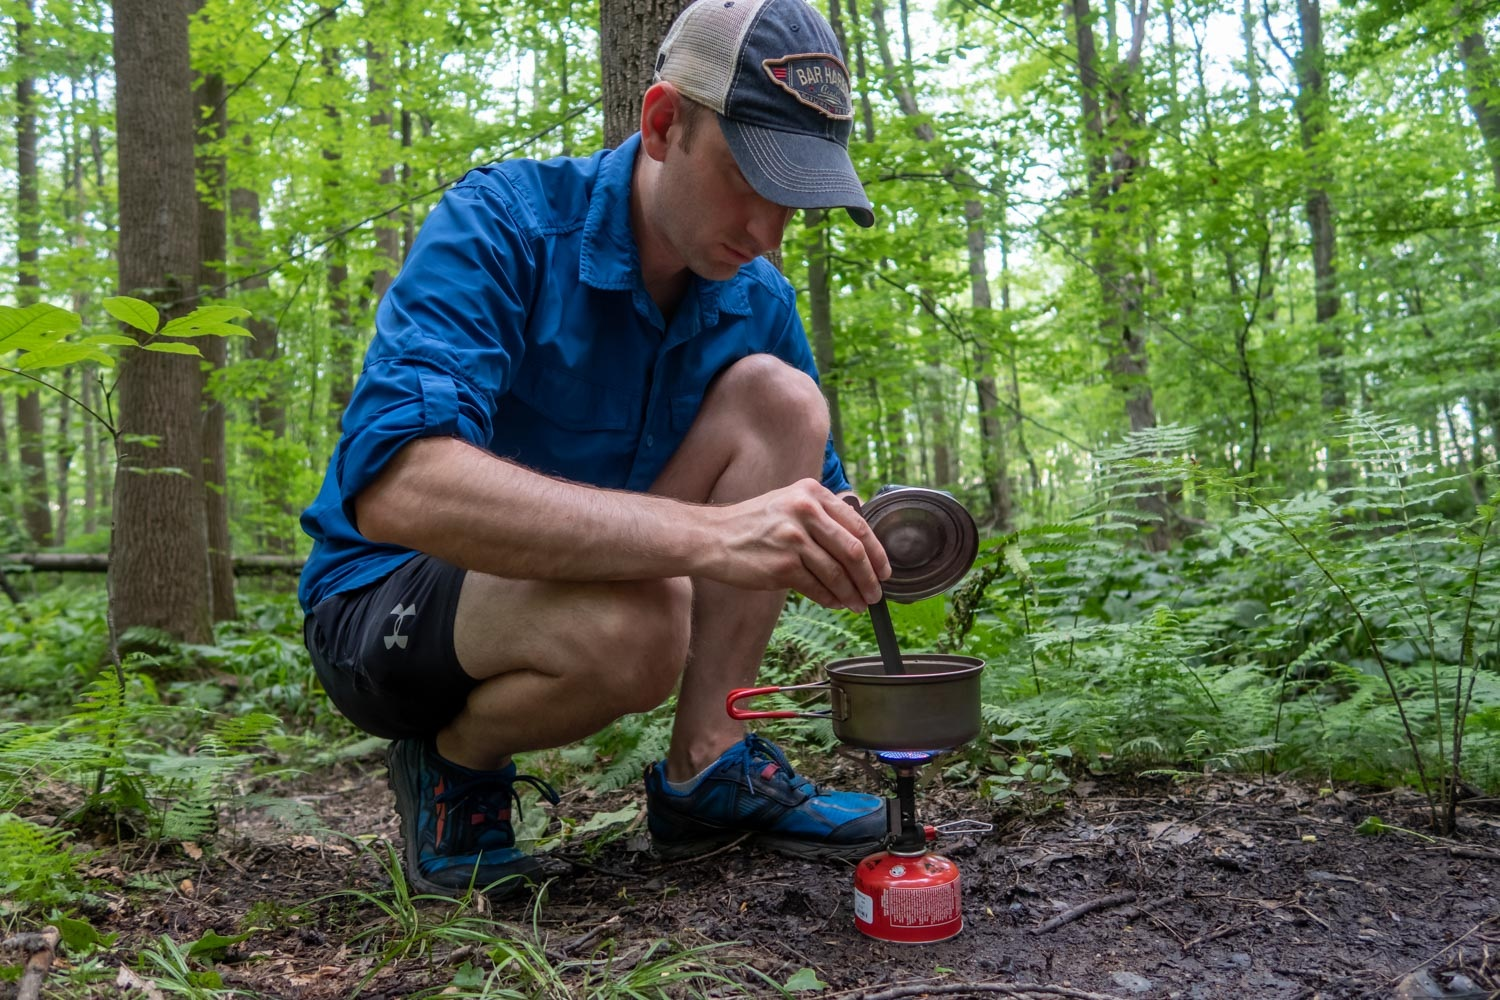 cooking with the msr pocketrocket deluxe stove